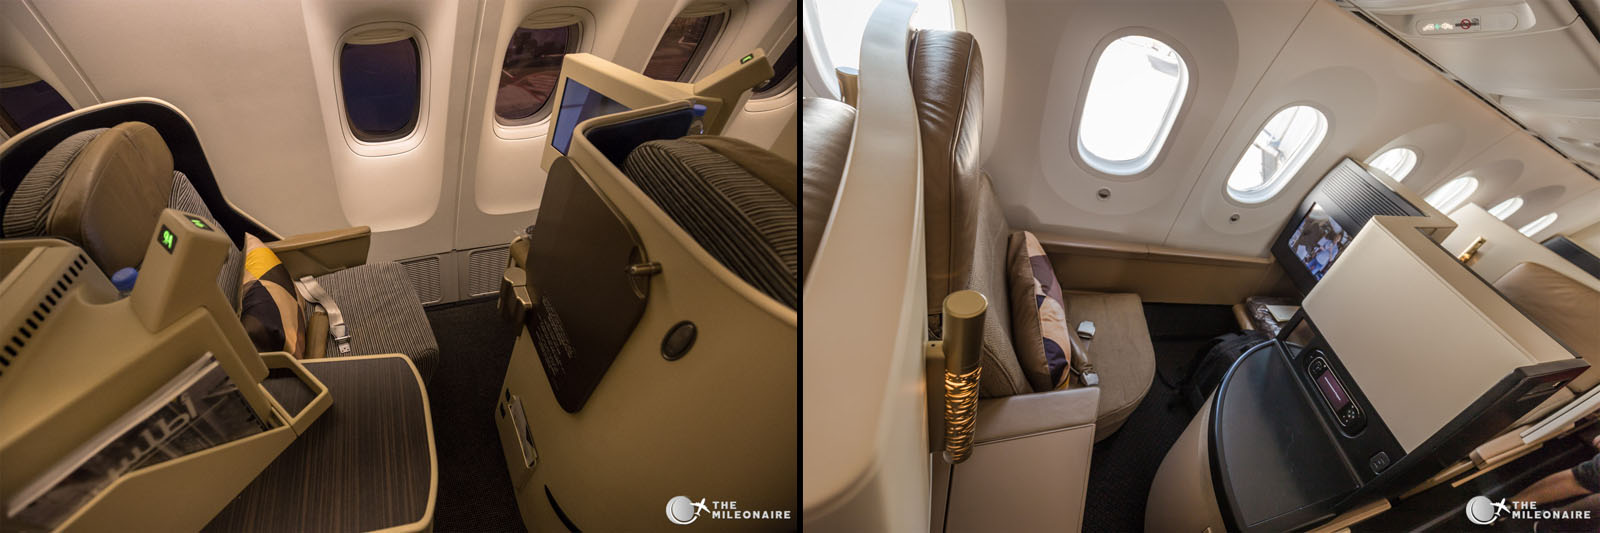 etihad business class vs studio difference